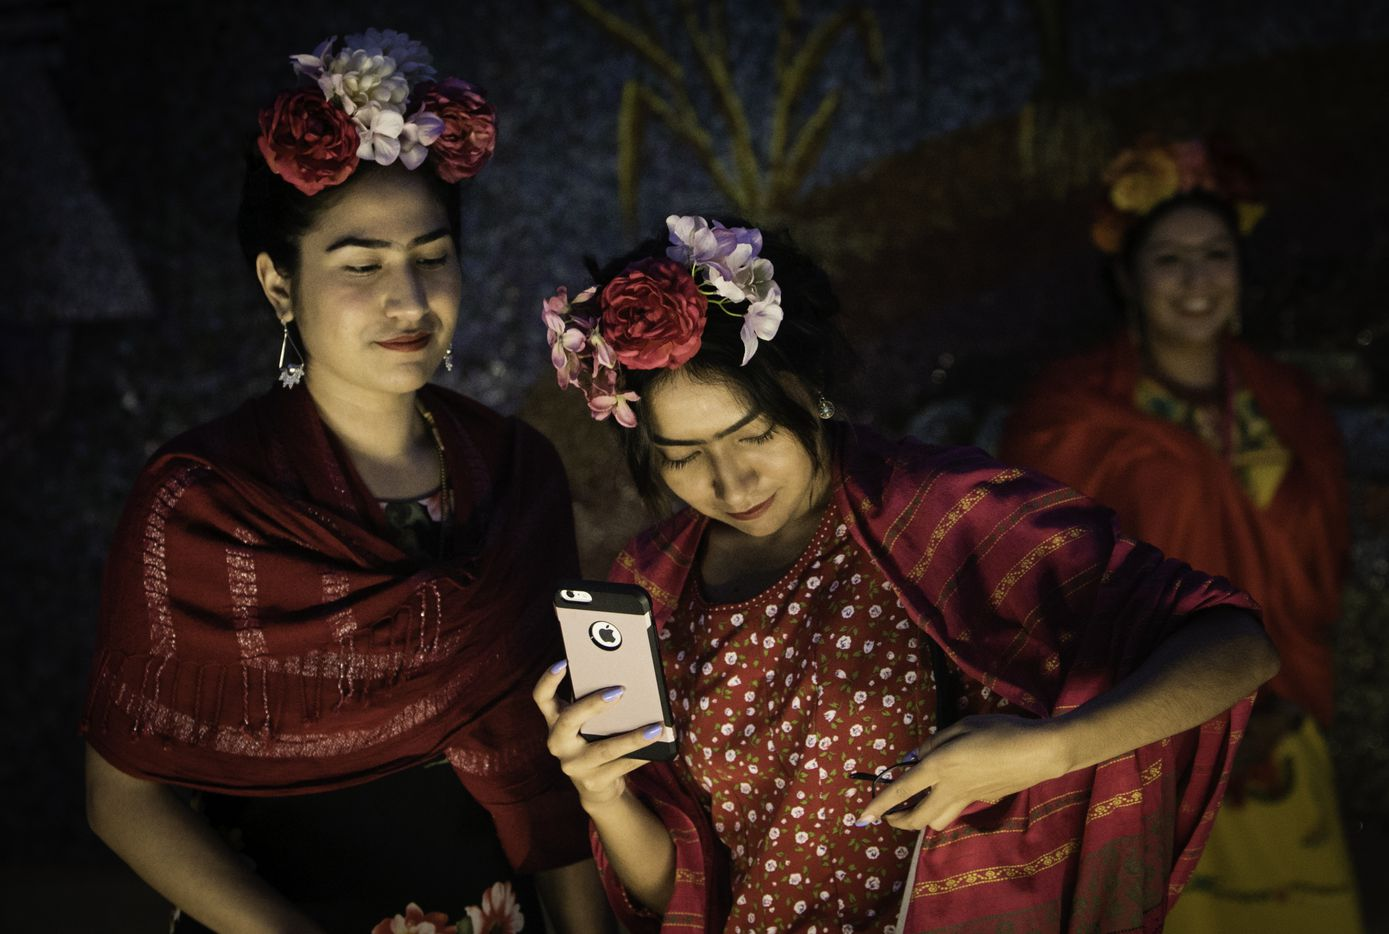 Sisters Grecia and Ilse Rangel take photographs after the attempt to break the Guinness World Record for the largest gathering of people dressed as Frida Kahlo in one location at the Dallas Museum of the Art in Dallas on July 6, 2017.